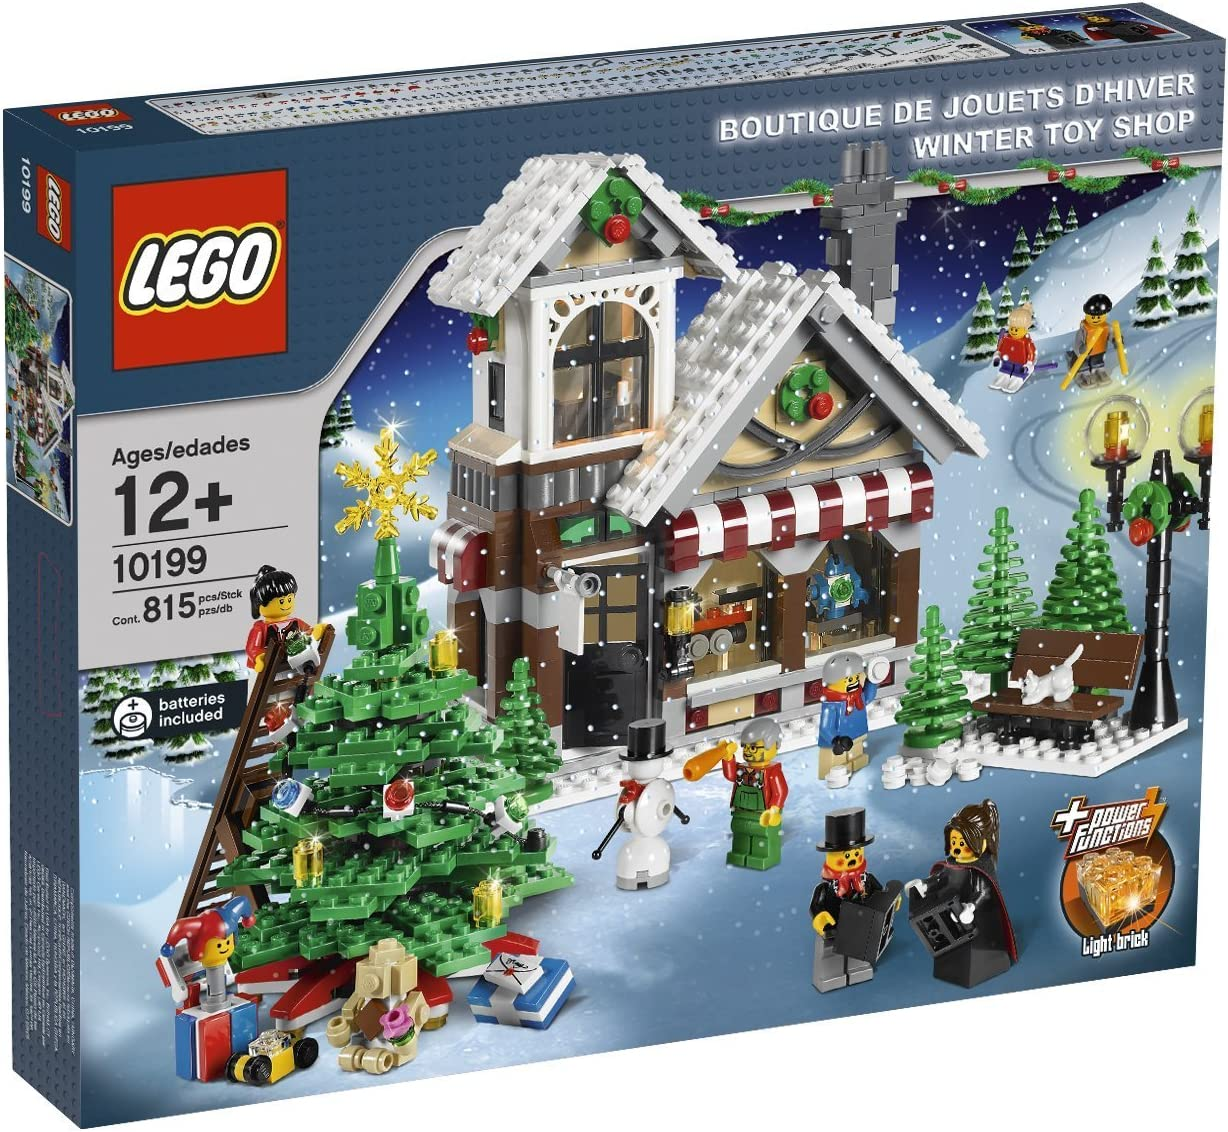 LEGO Creator Winter Toy Shop 10199